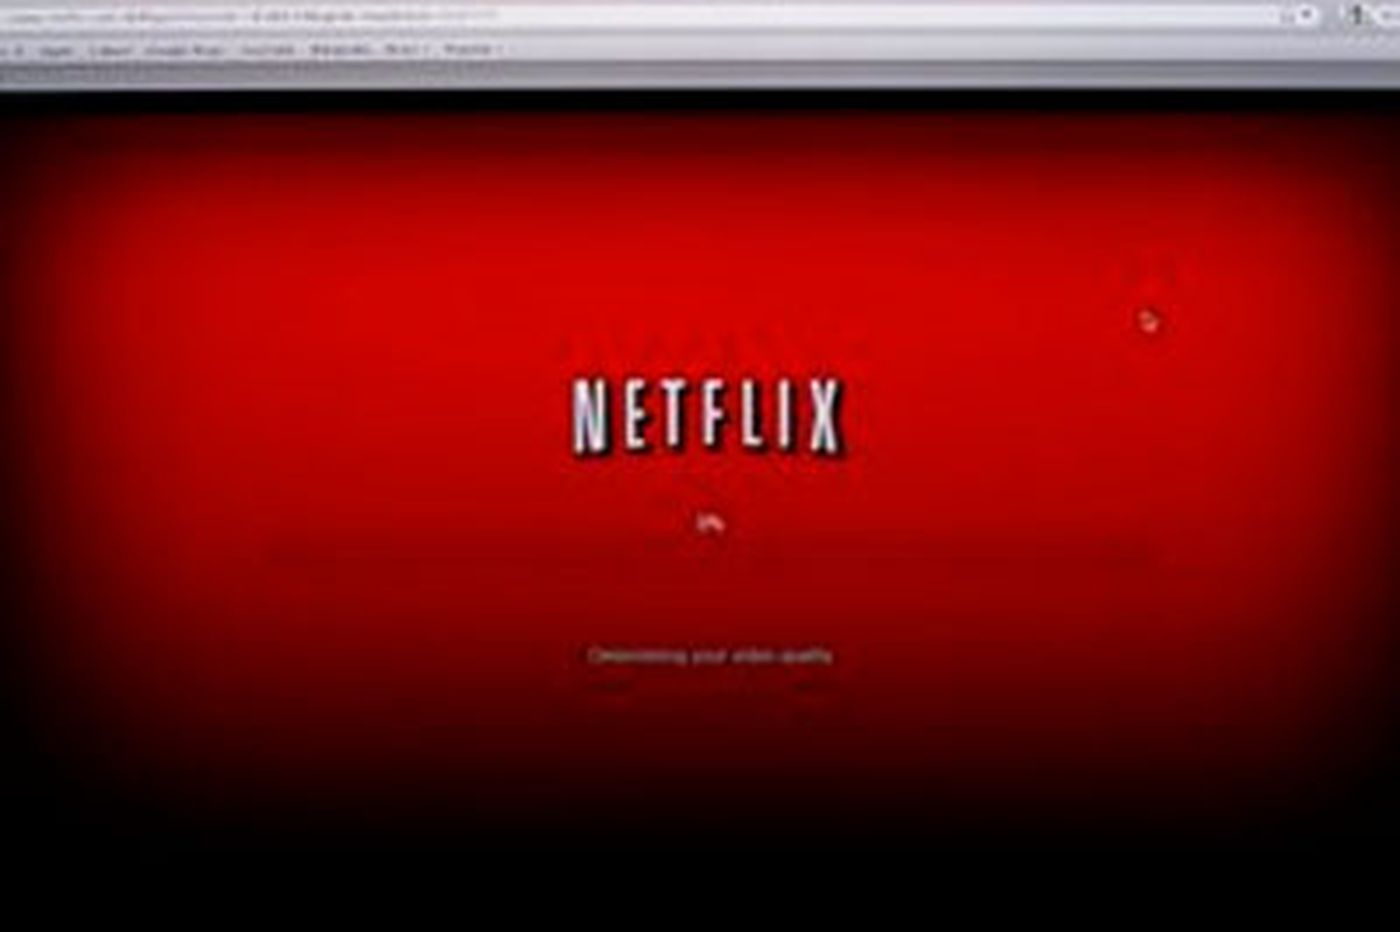 Get ready for Netflix to litter your Facebook feed